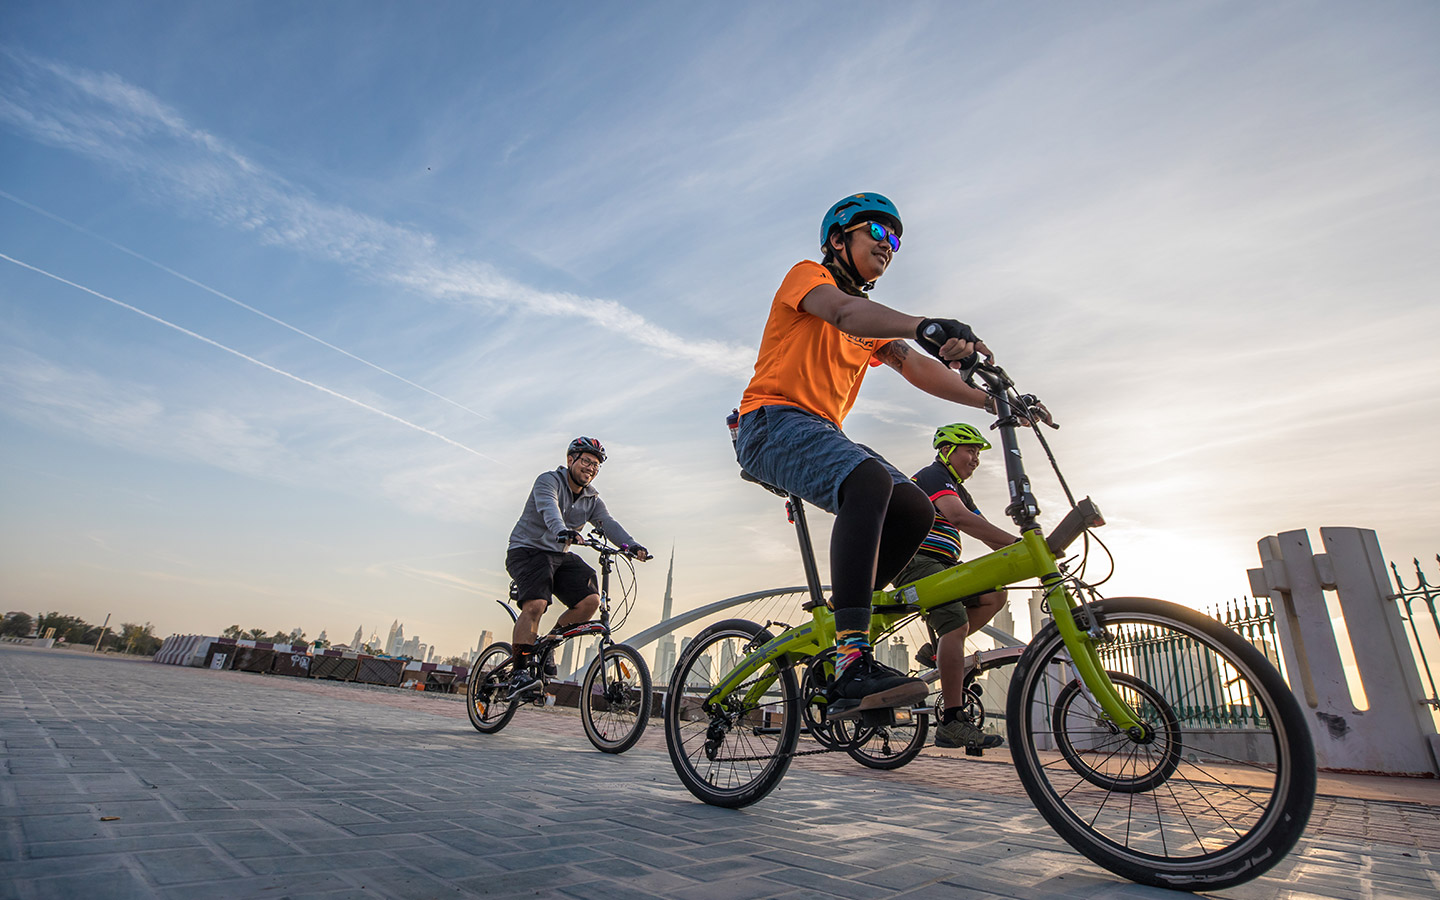 Cycling is a great way to keep fit in Dubai